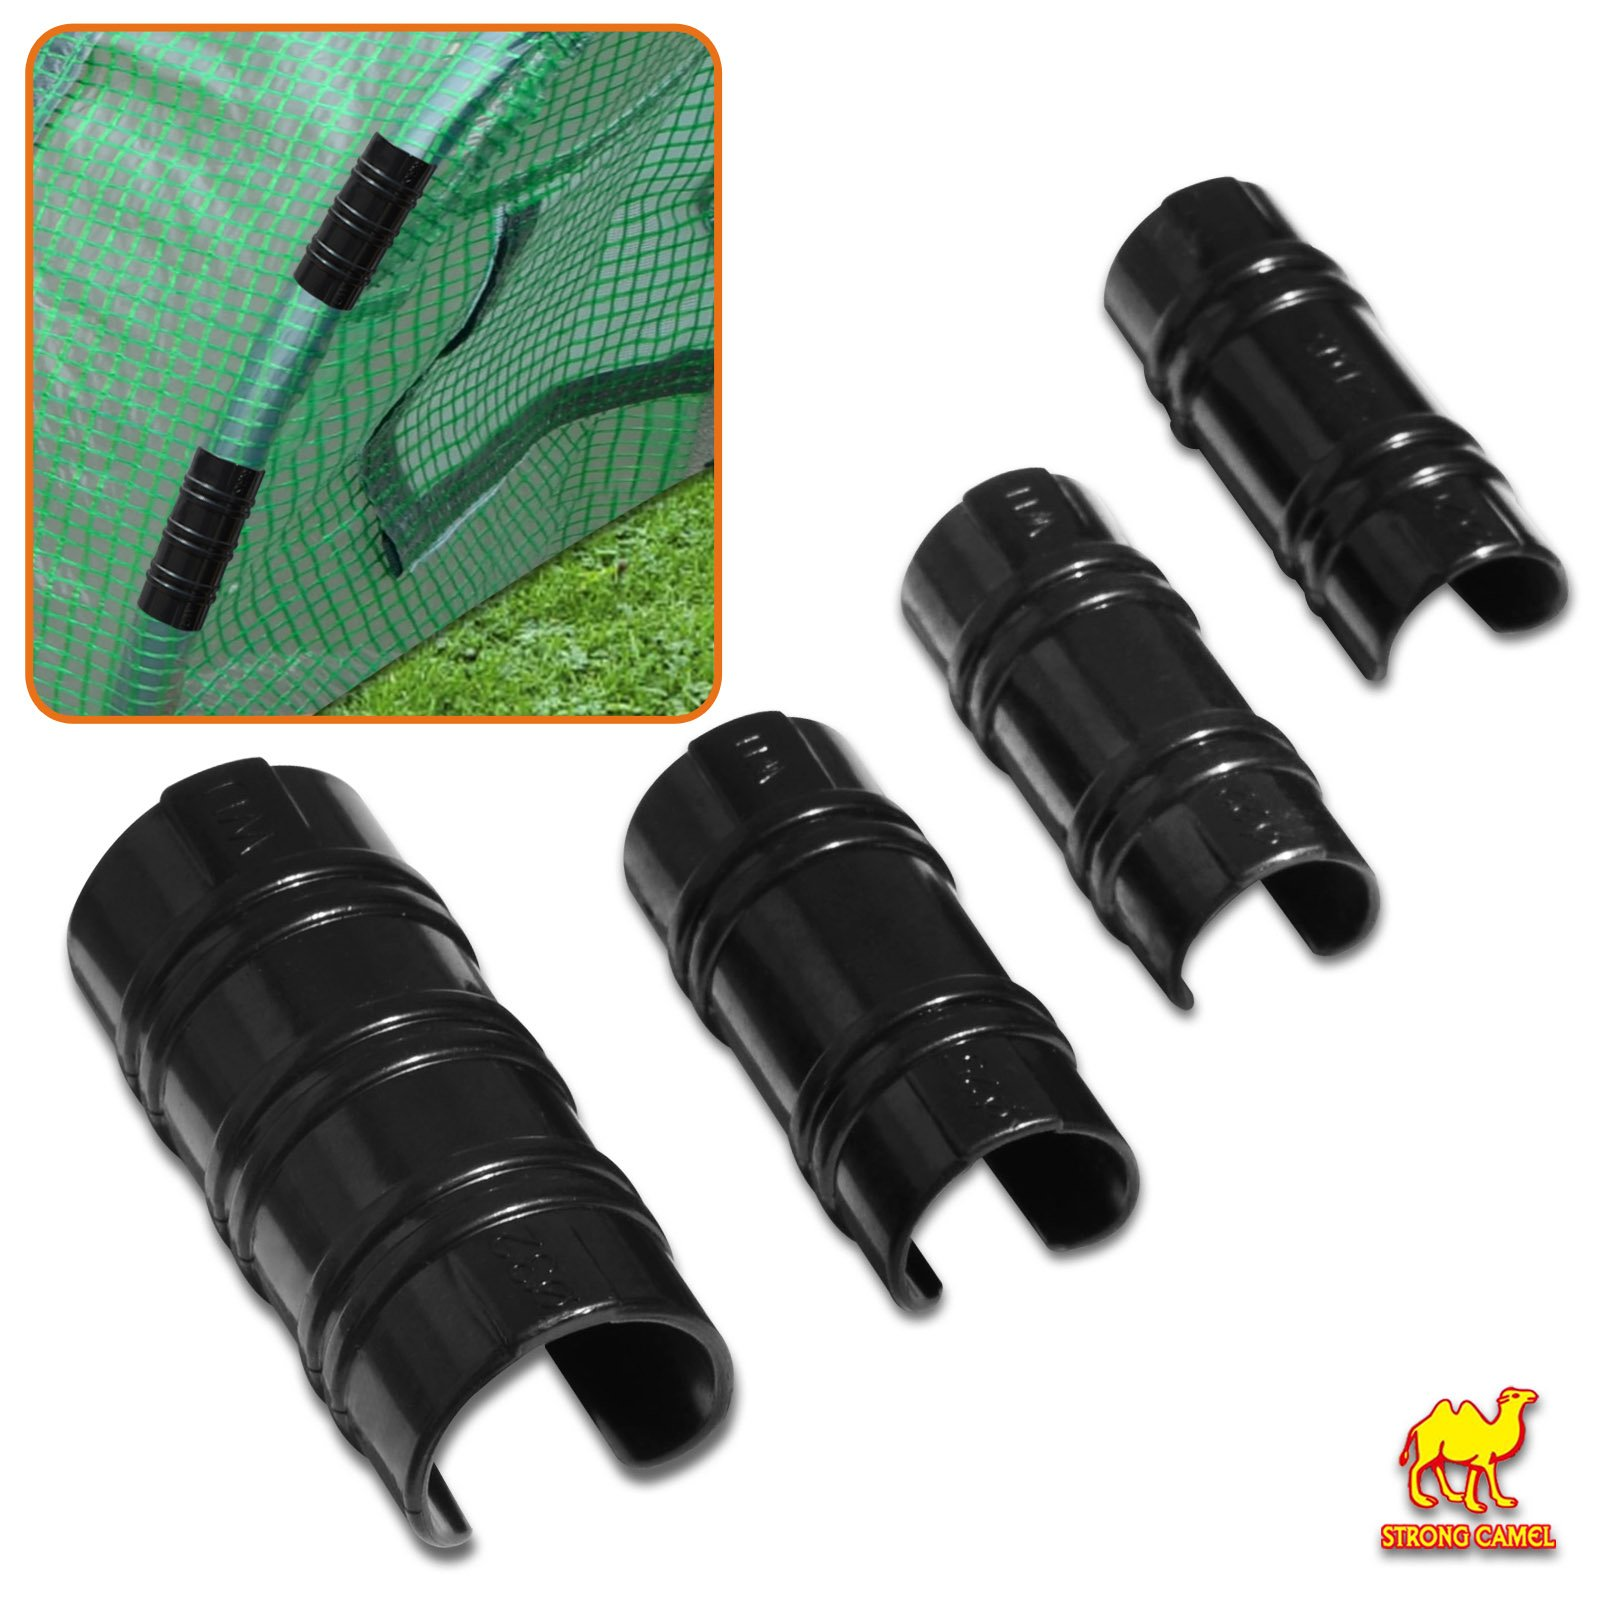 Strong Camel ABS Snap Clamp 1 inch x 2-1/2 Wide for 1 inch Pipe to Secure Plastic/ Fabric Attach Greenhouse Row Cover Shade (10pcs) by Strong Camel